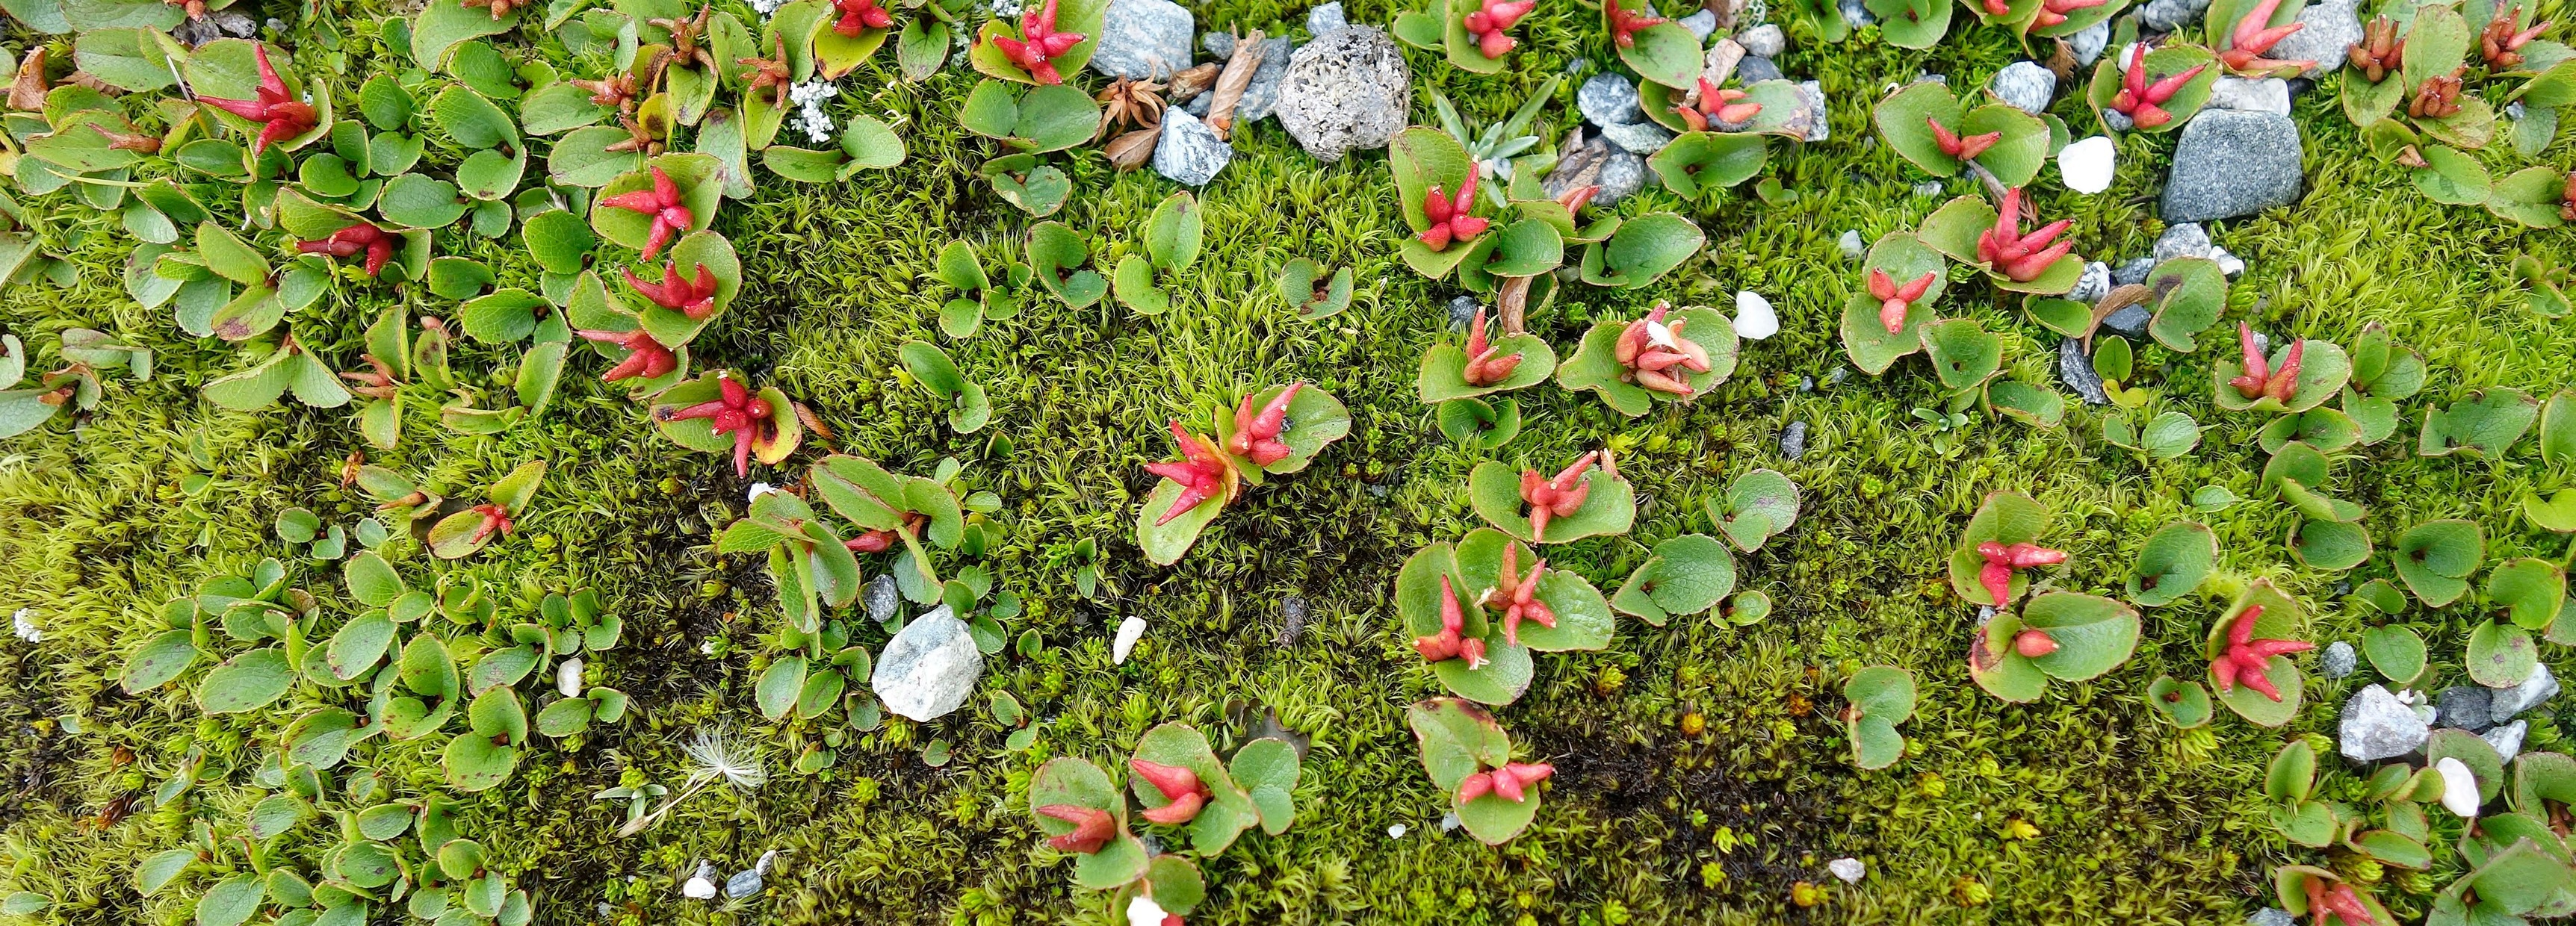 The world's tiniest tree | BBC Earth